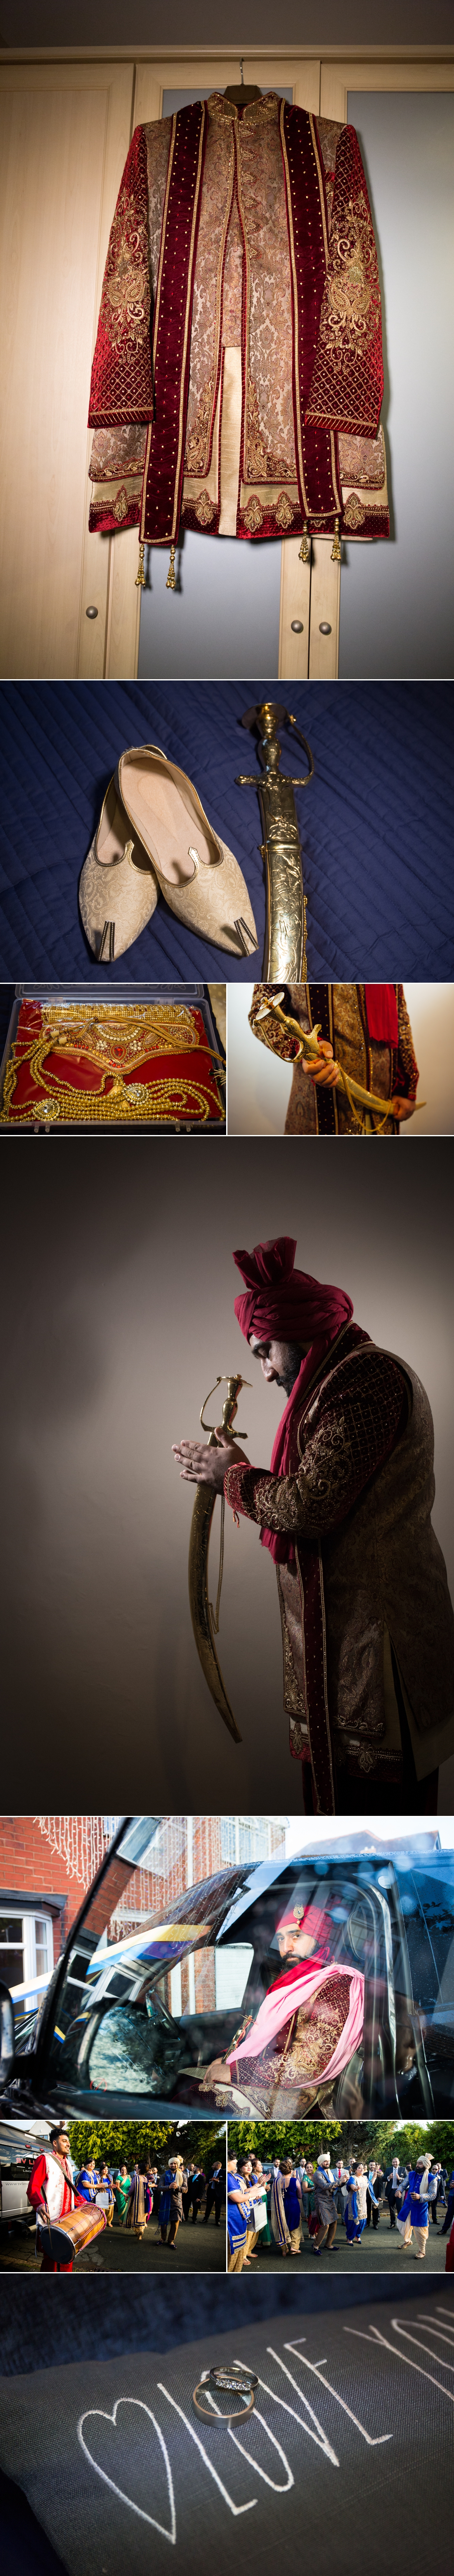 sikh-wedding-photography-at-guru-nanak